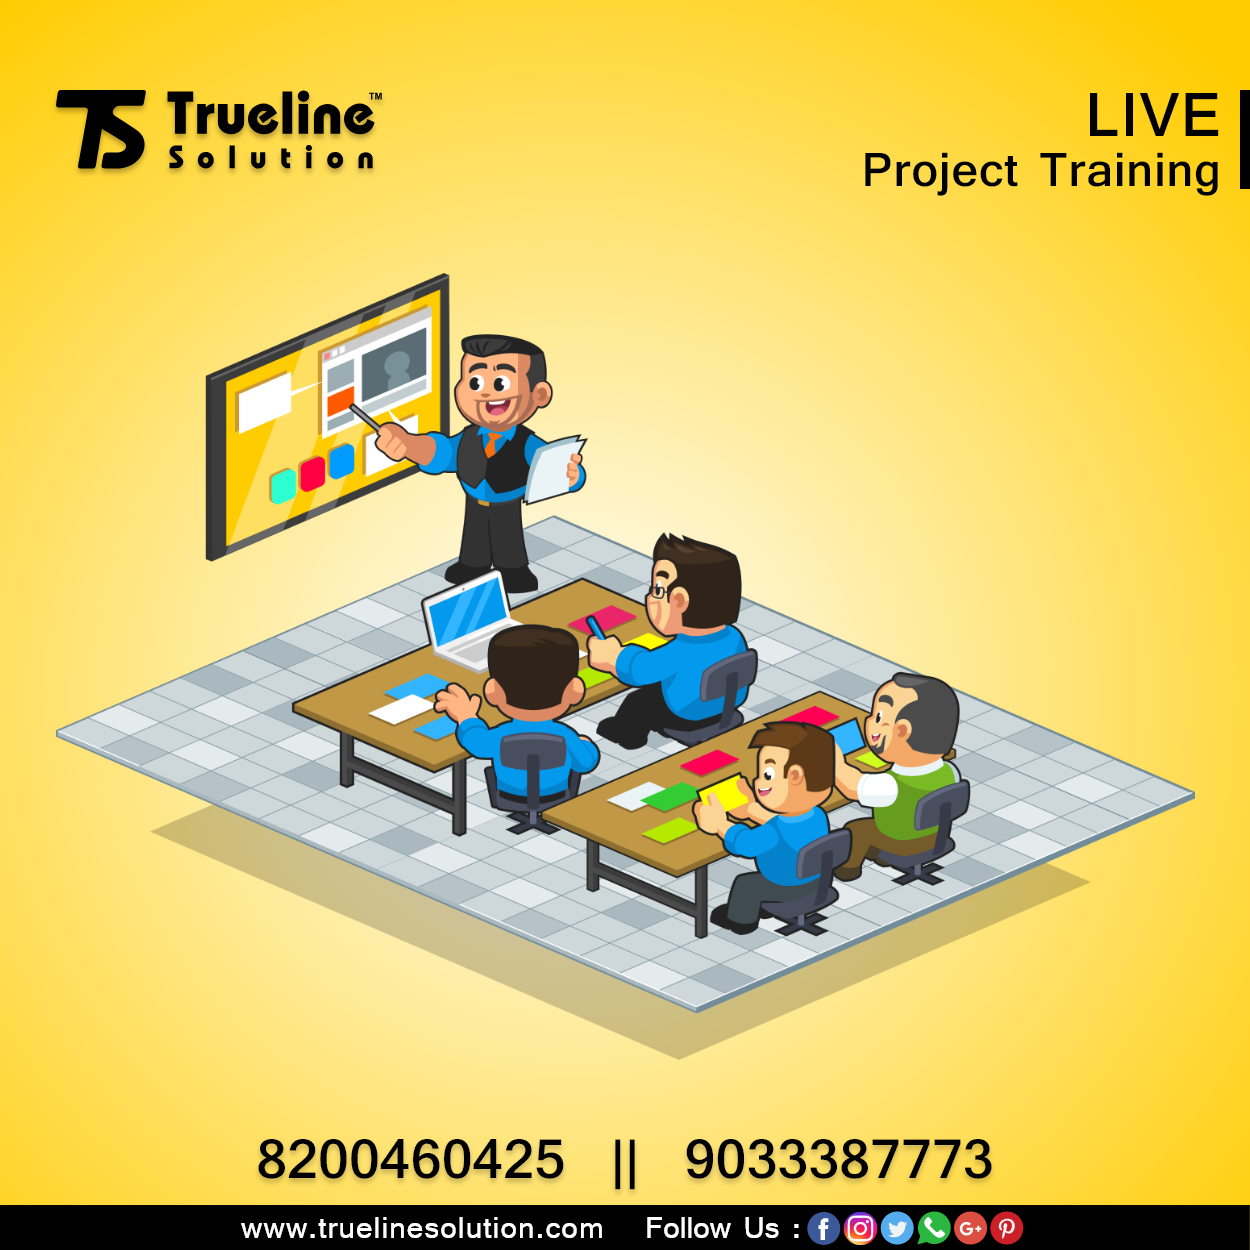 ARE YOU LOOKING FOR LIVE PROJECT TRAINING IN SURAT? PHP